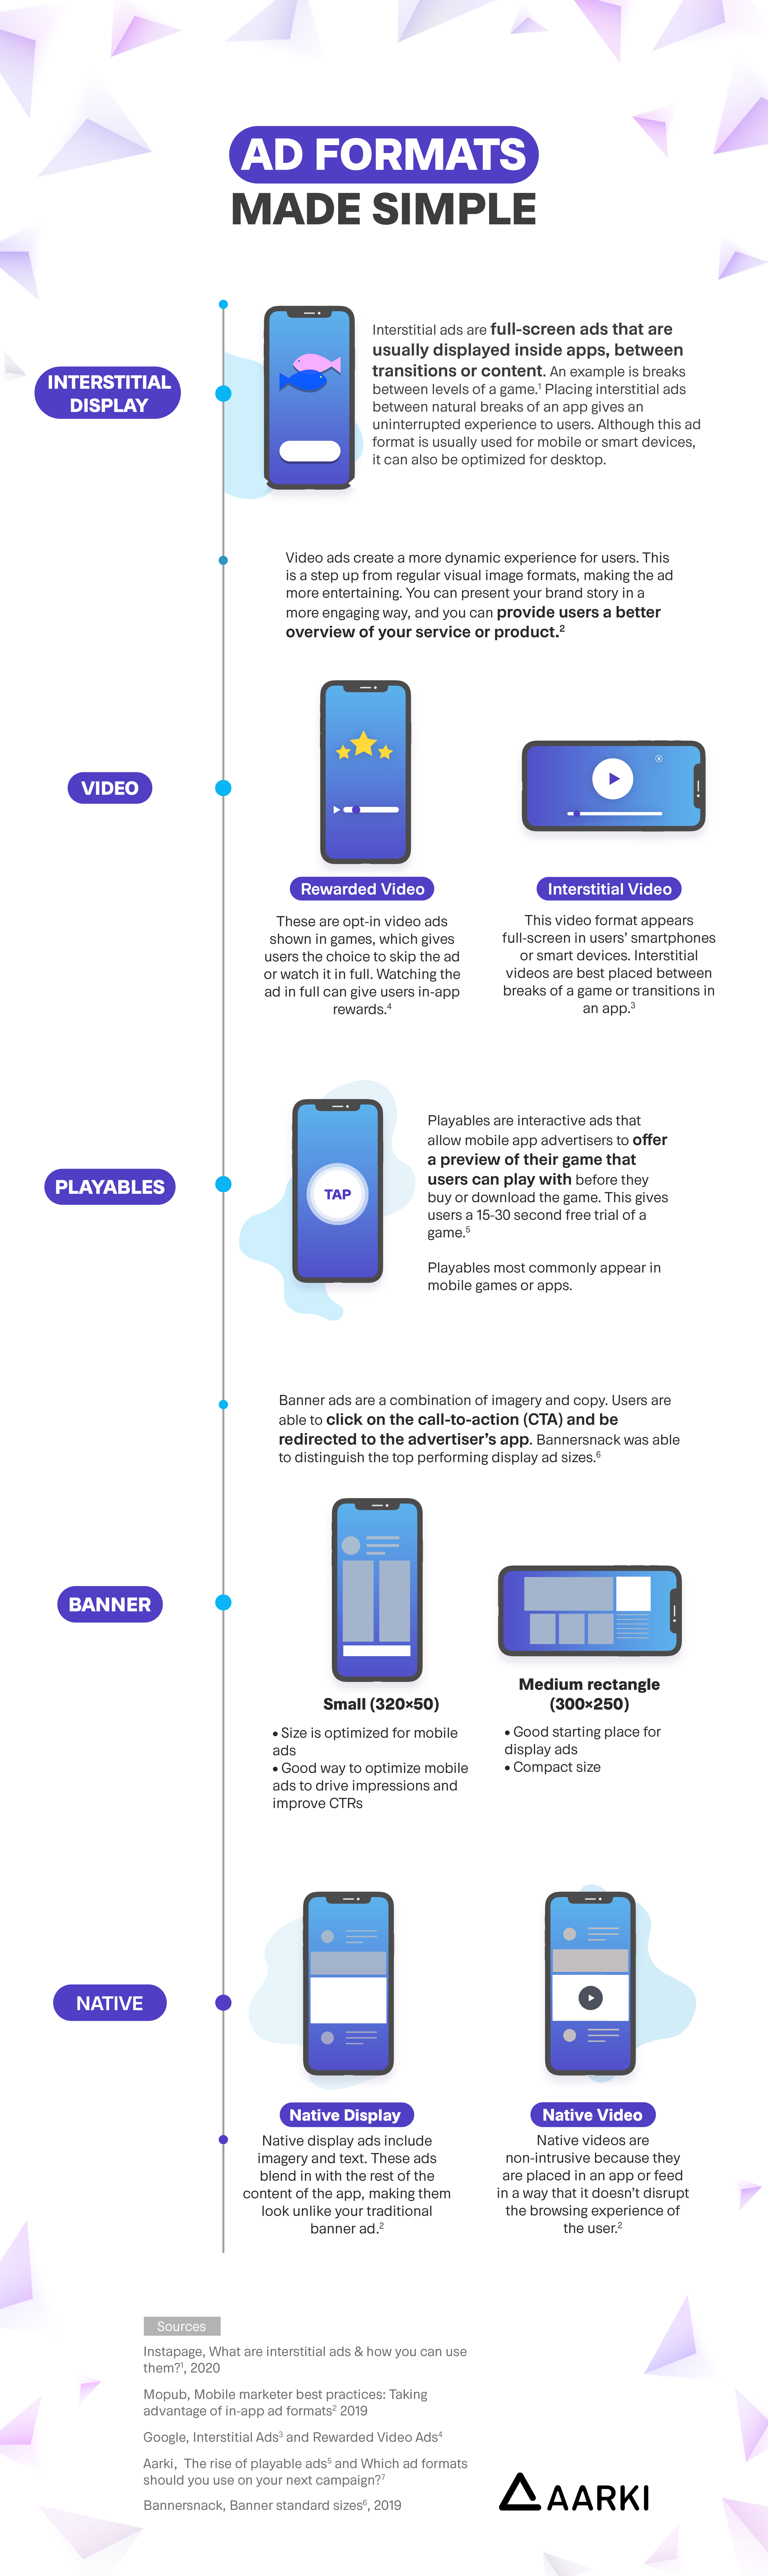 Mobile Ad Formats Made Simple Infographic